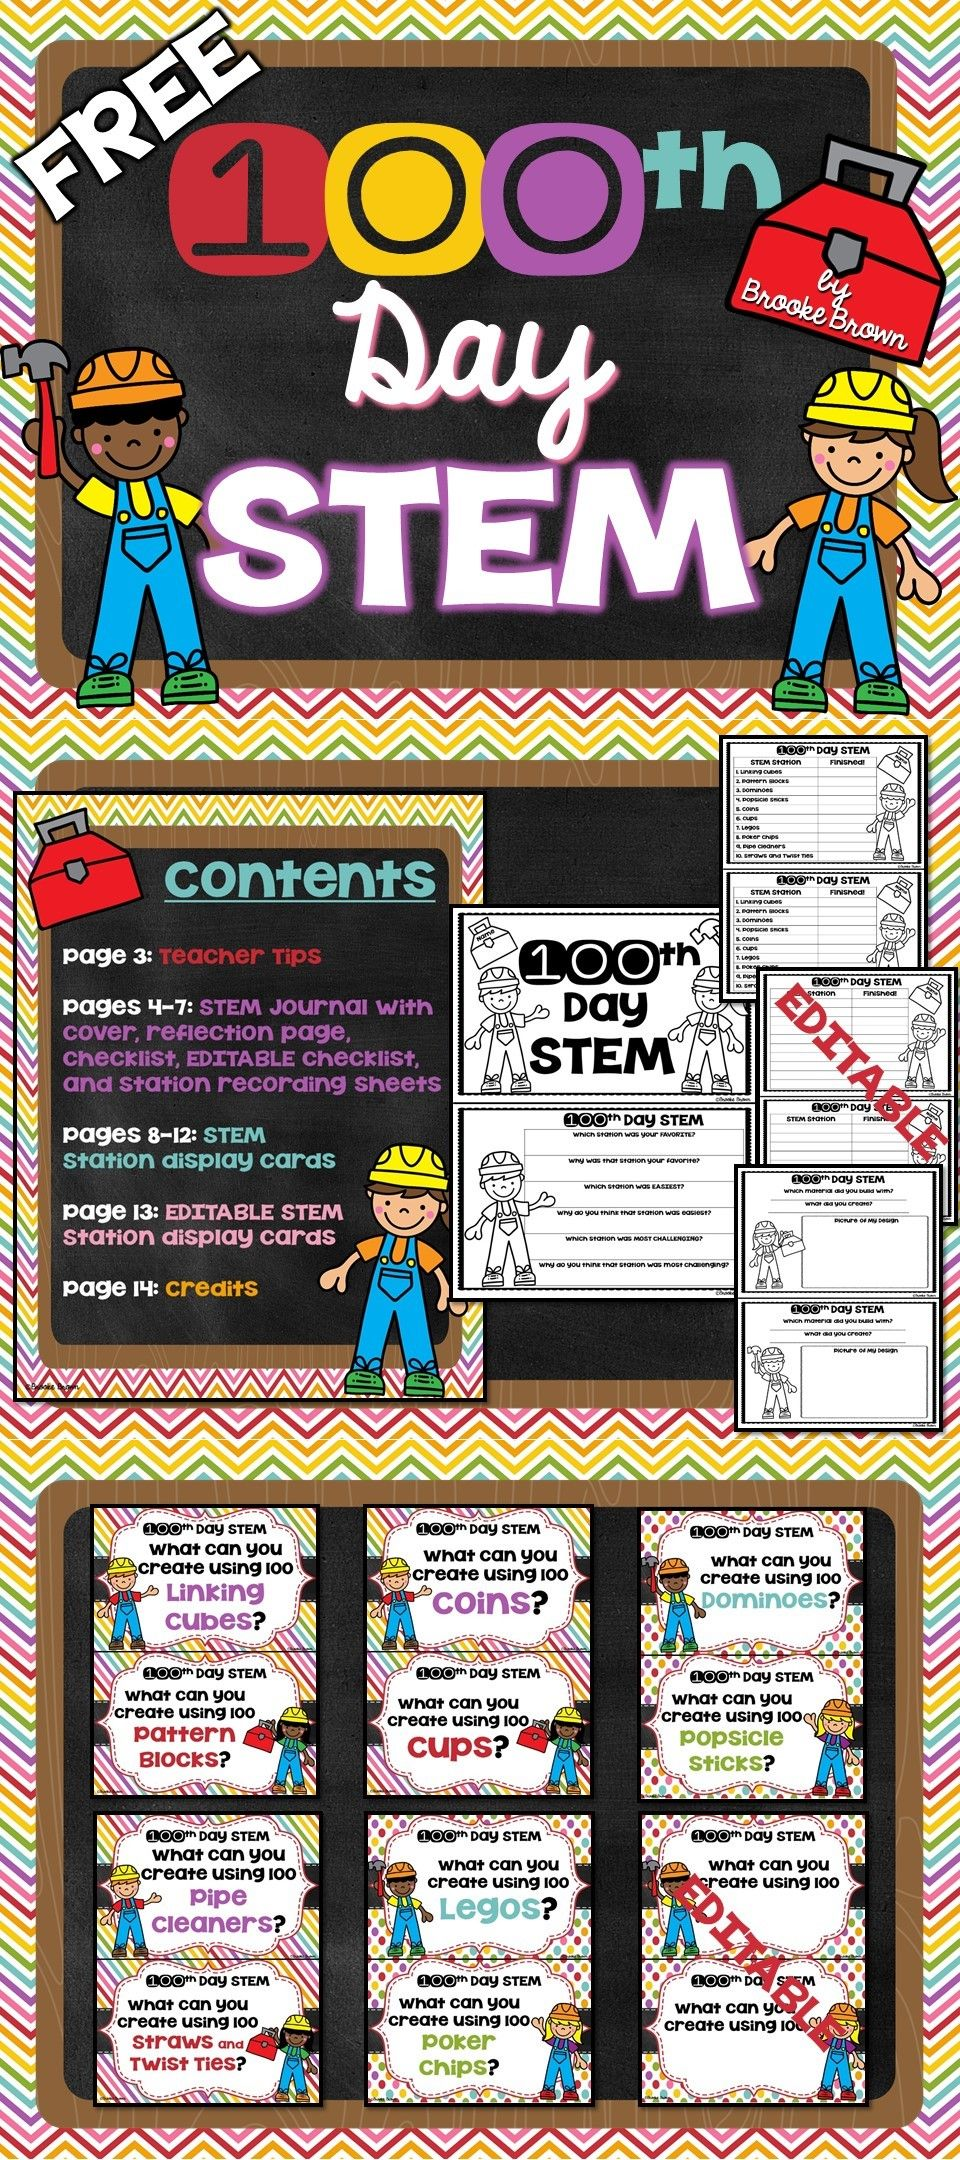 Stem For The 100th Day Of School Miss Hannings Pinterest